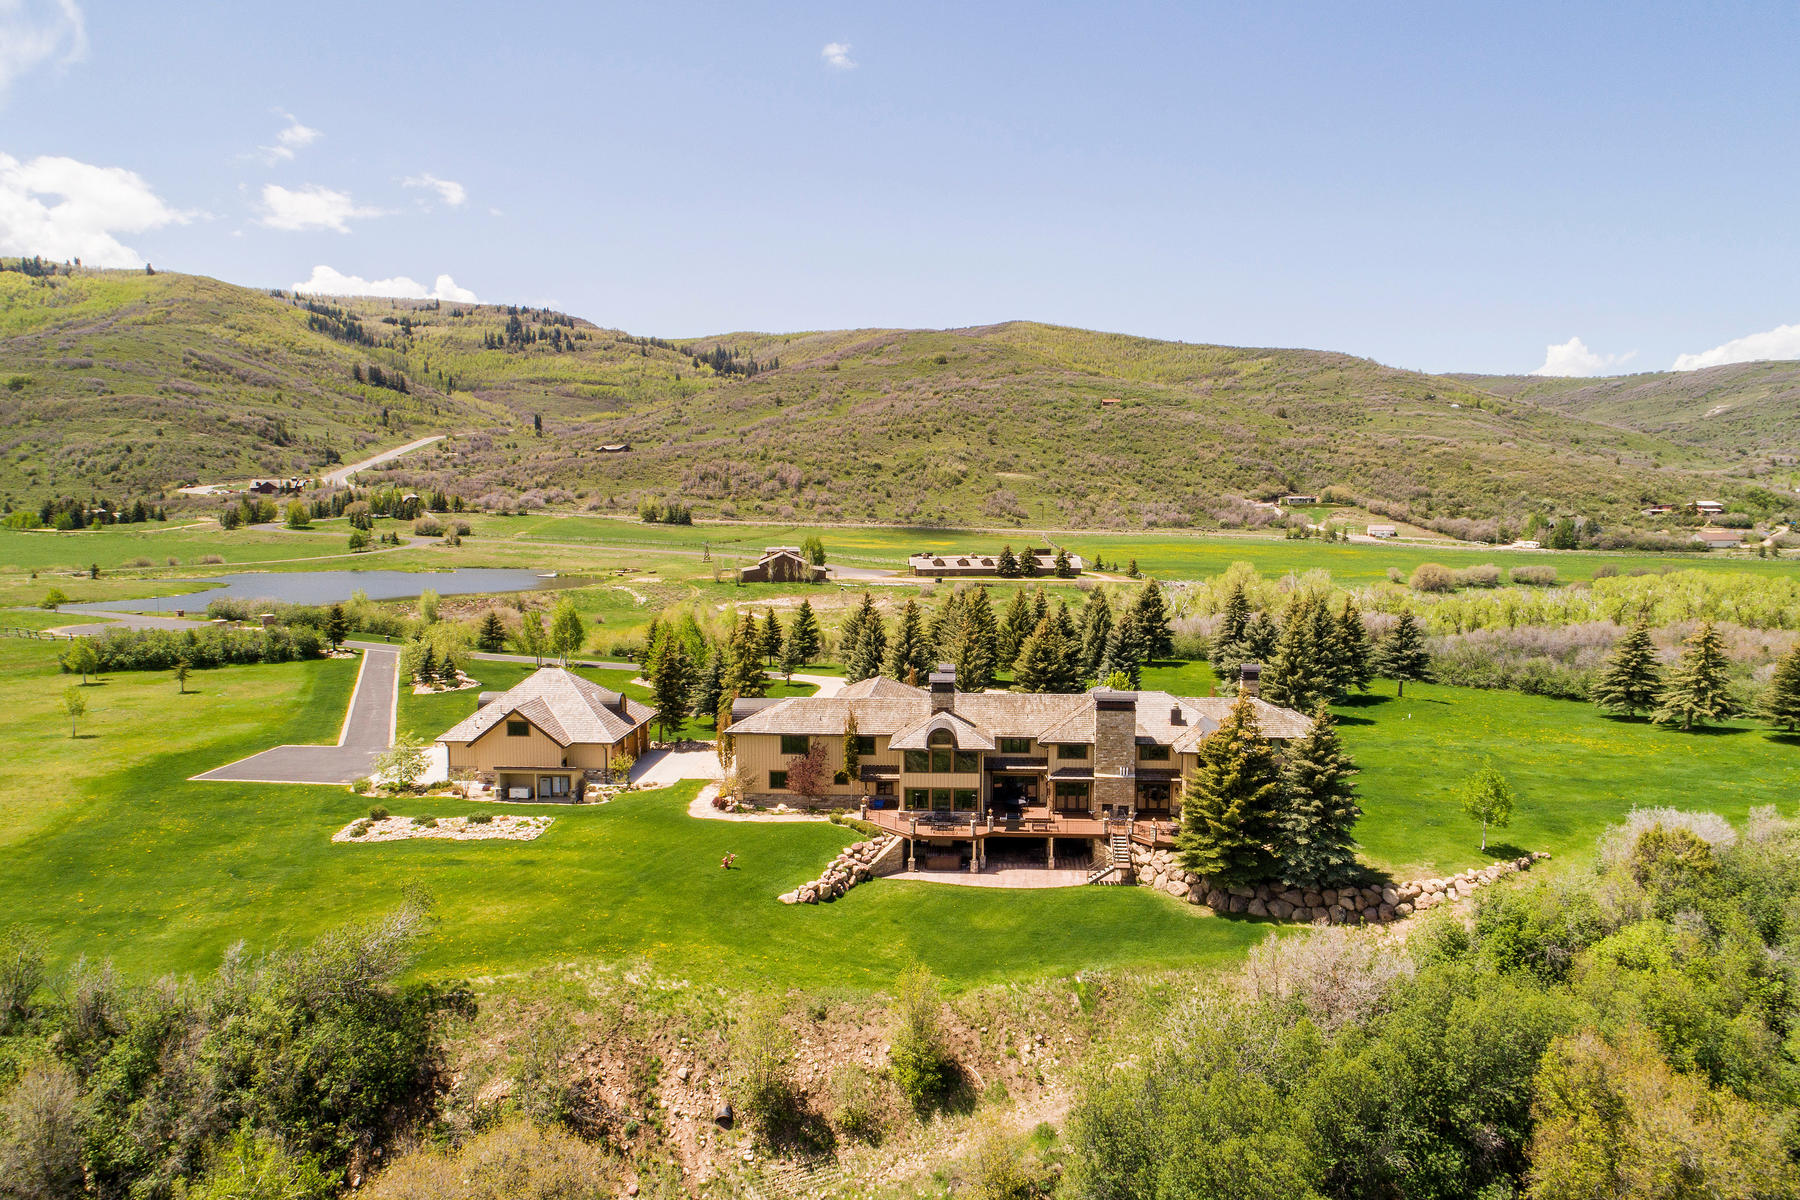 Property for Sale at River View Ranch 4519 River Ranch Wy, Woodland, Utah 84036 United States